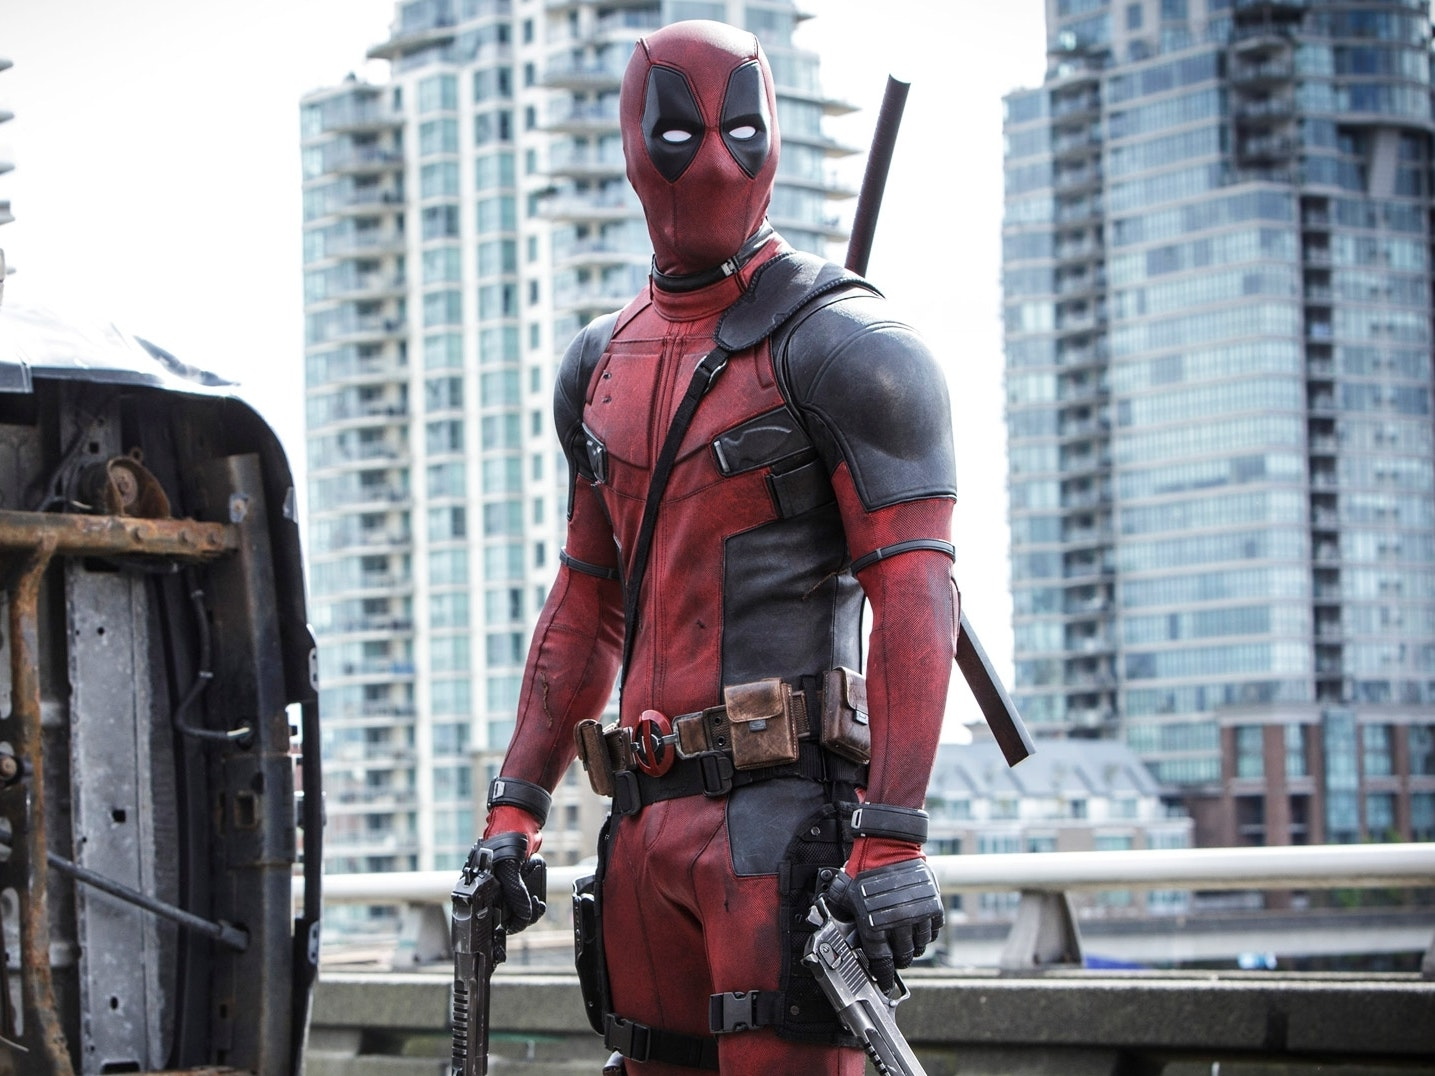 'Deadpool 2' Will Be a Giant Parody of Superhero Sequels